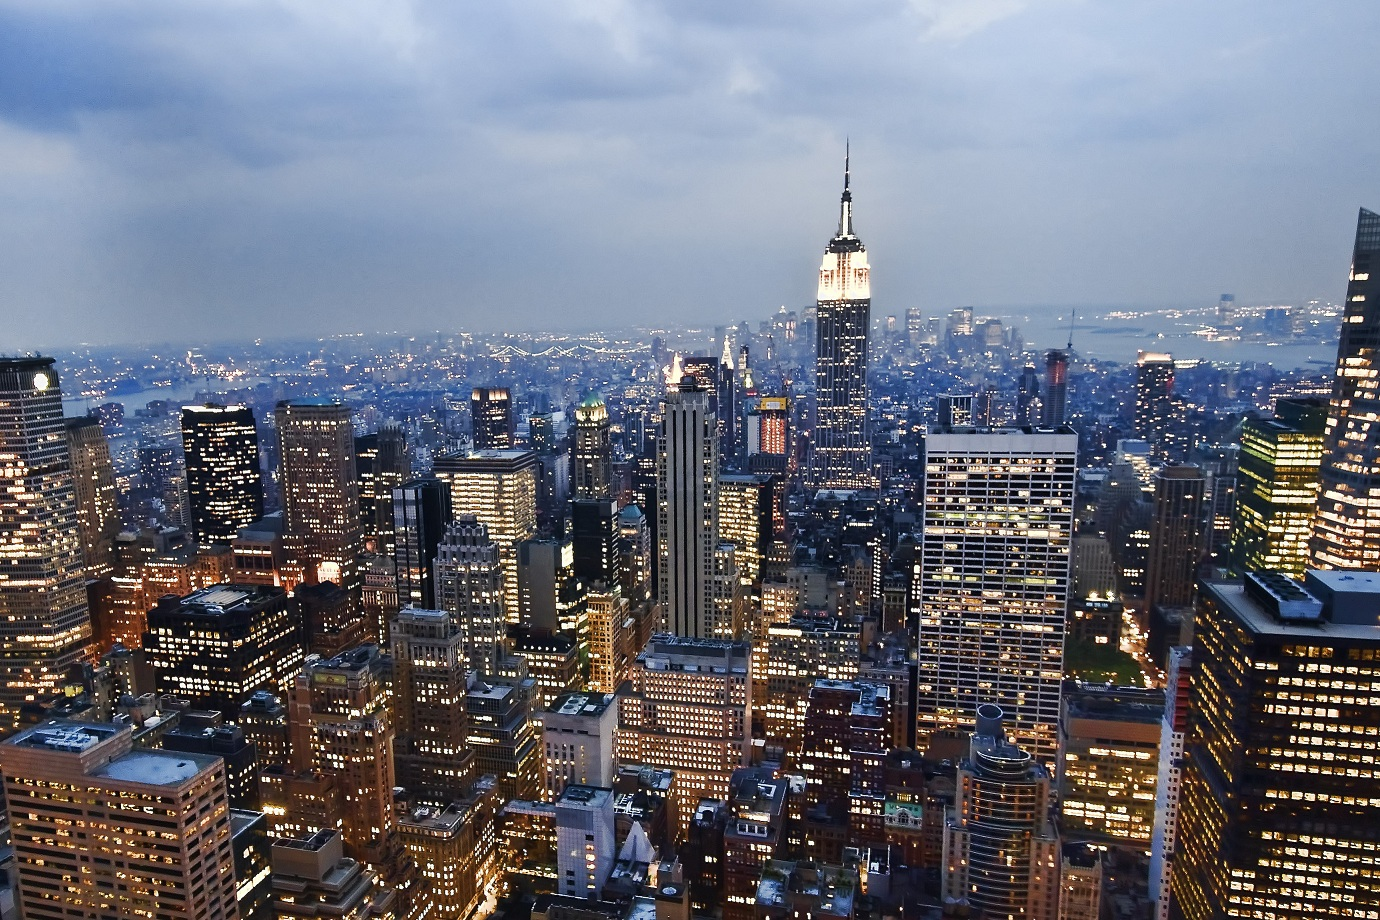 new-york-skyline-at-night-city-lights